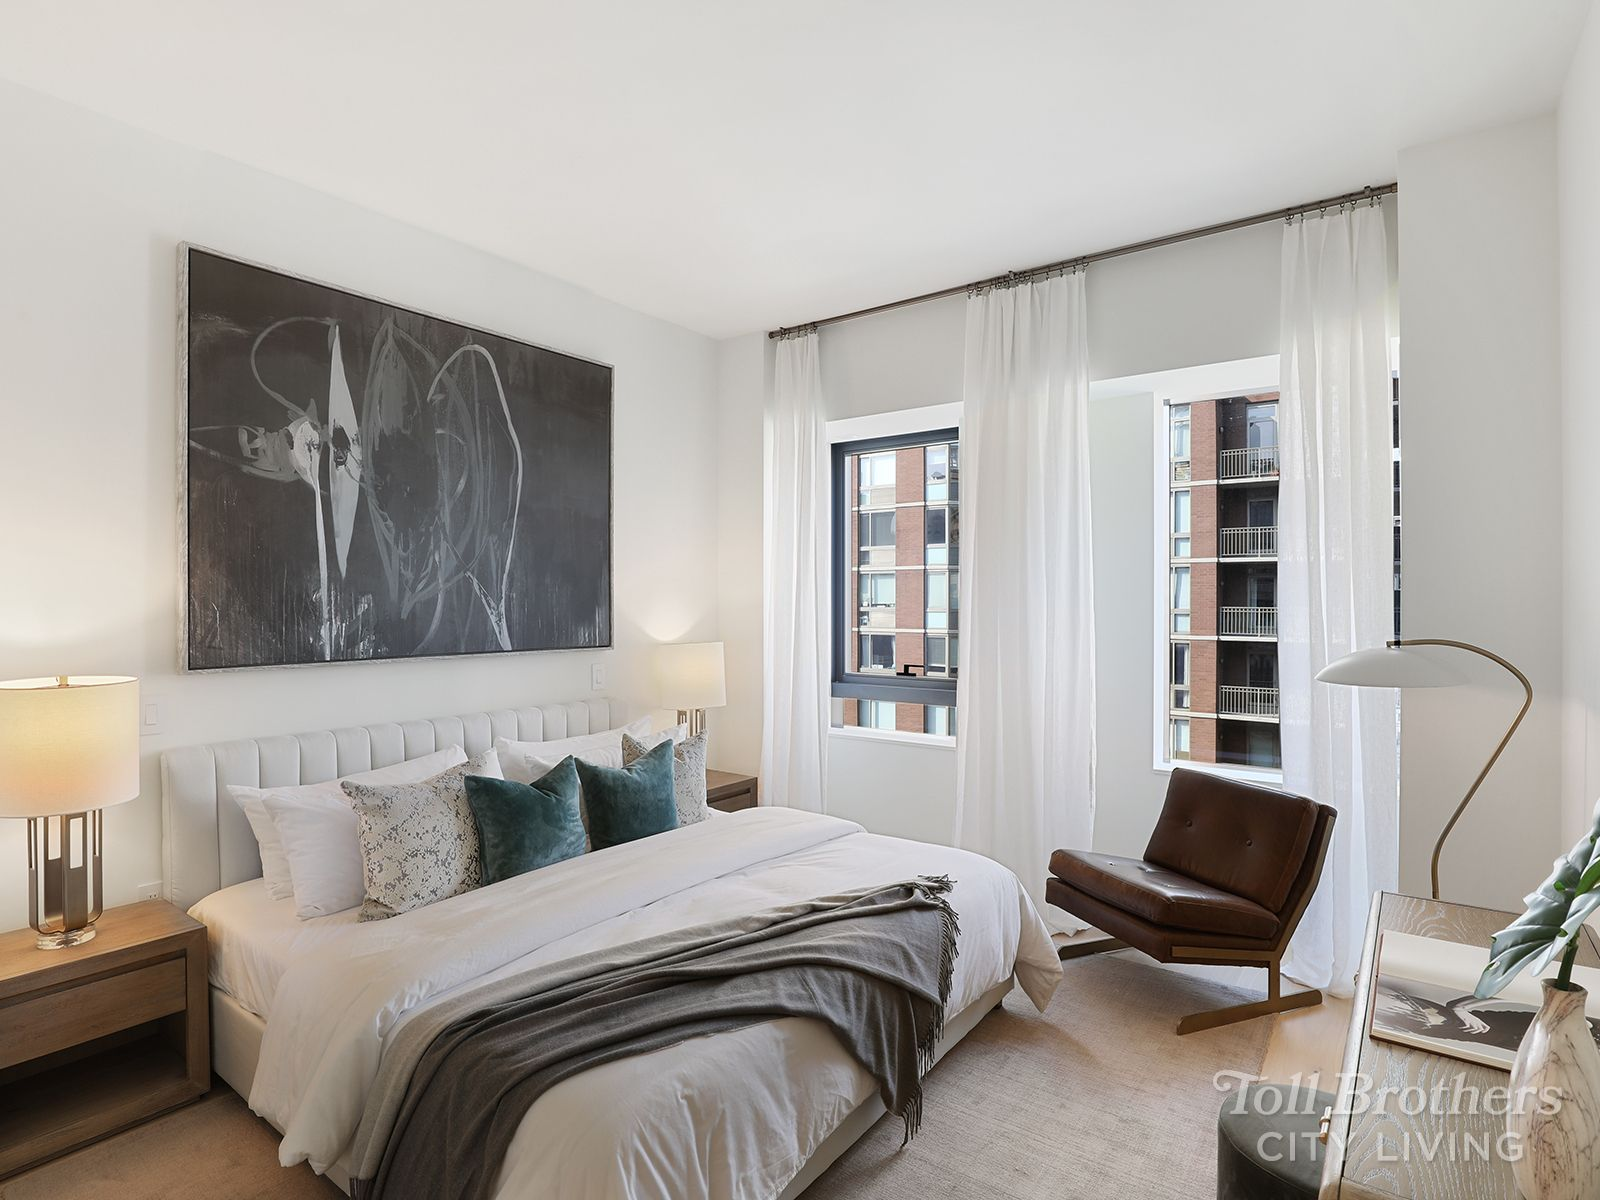 Bedroom featured in the N1002 By Toll Brothers in New York, NY